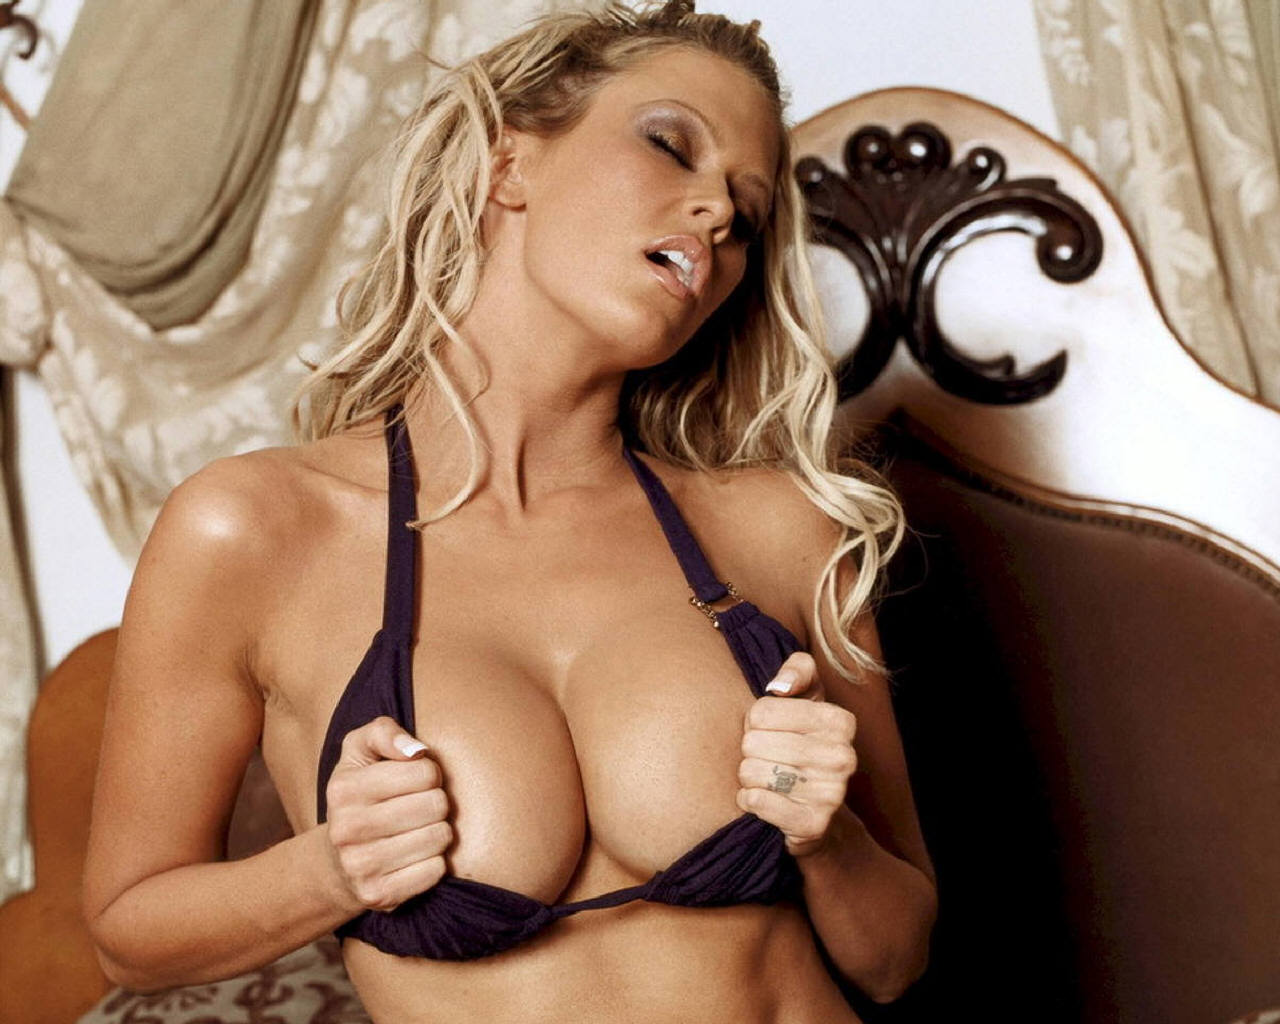 Blonde Pornstar With Big Boobs JJ 2011 Download Wallpapers Res 1280px X 1024px